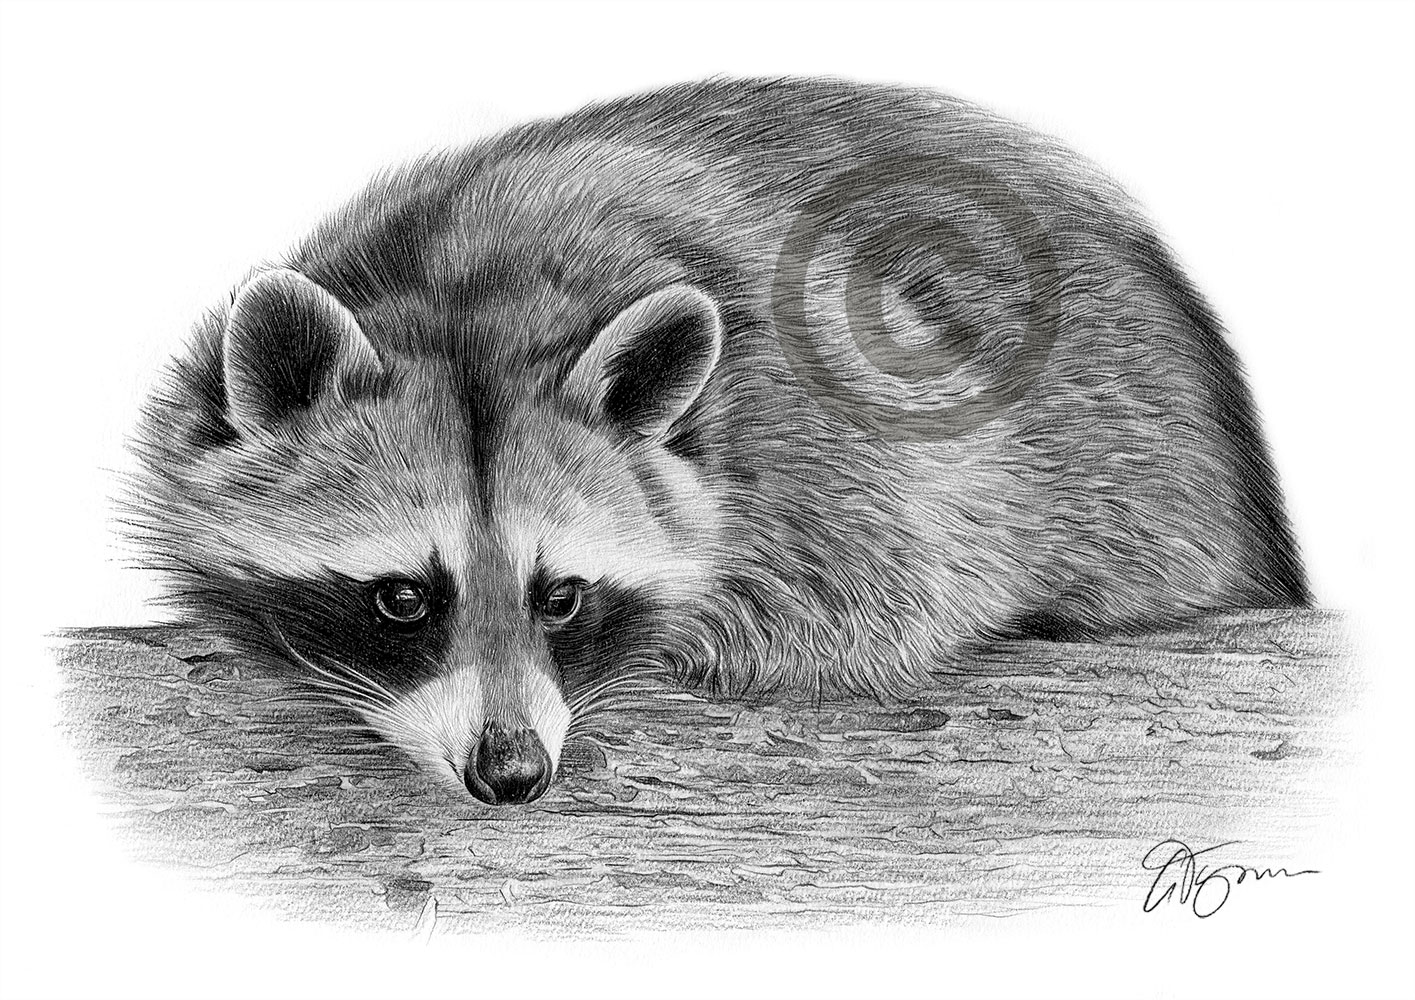 Pencil drawing of an adult raccoon by artist Gary Tymon